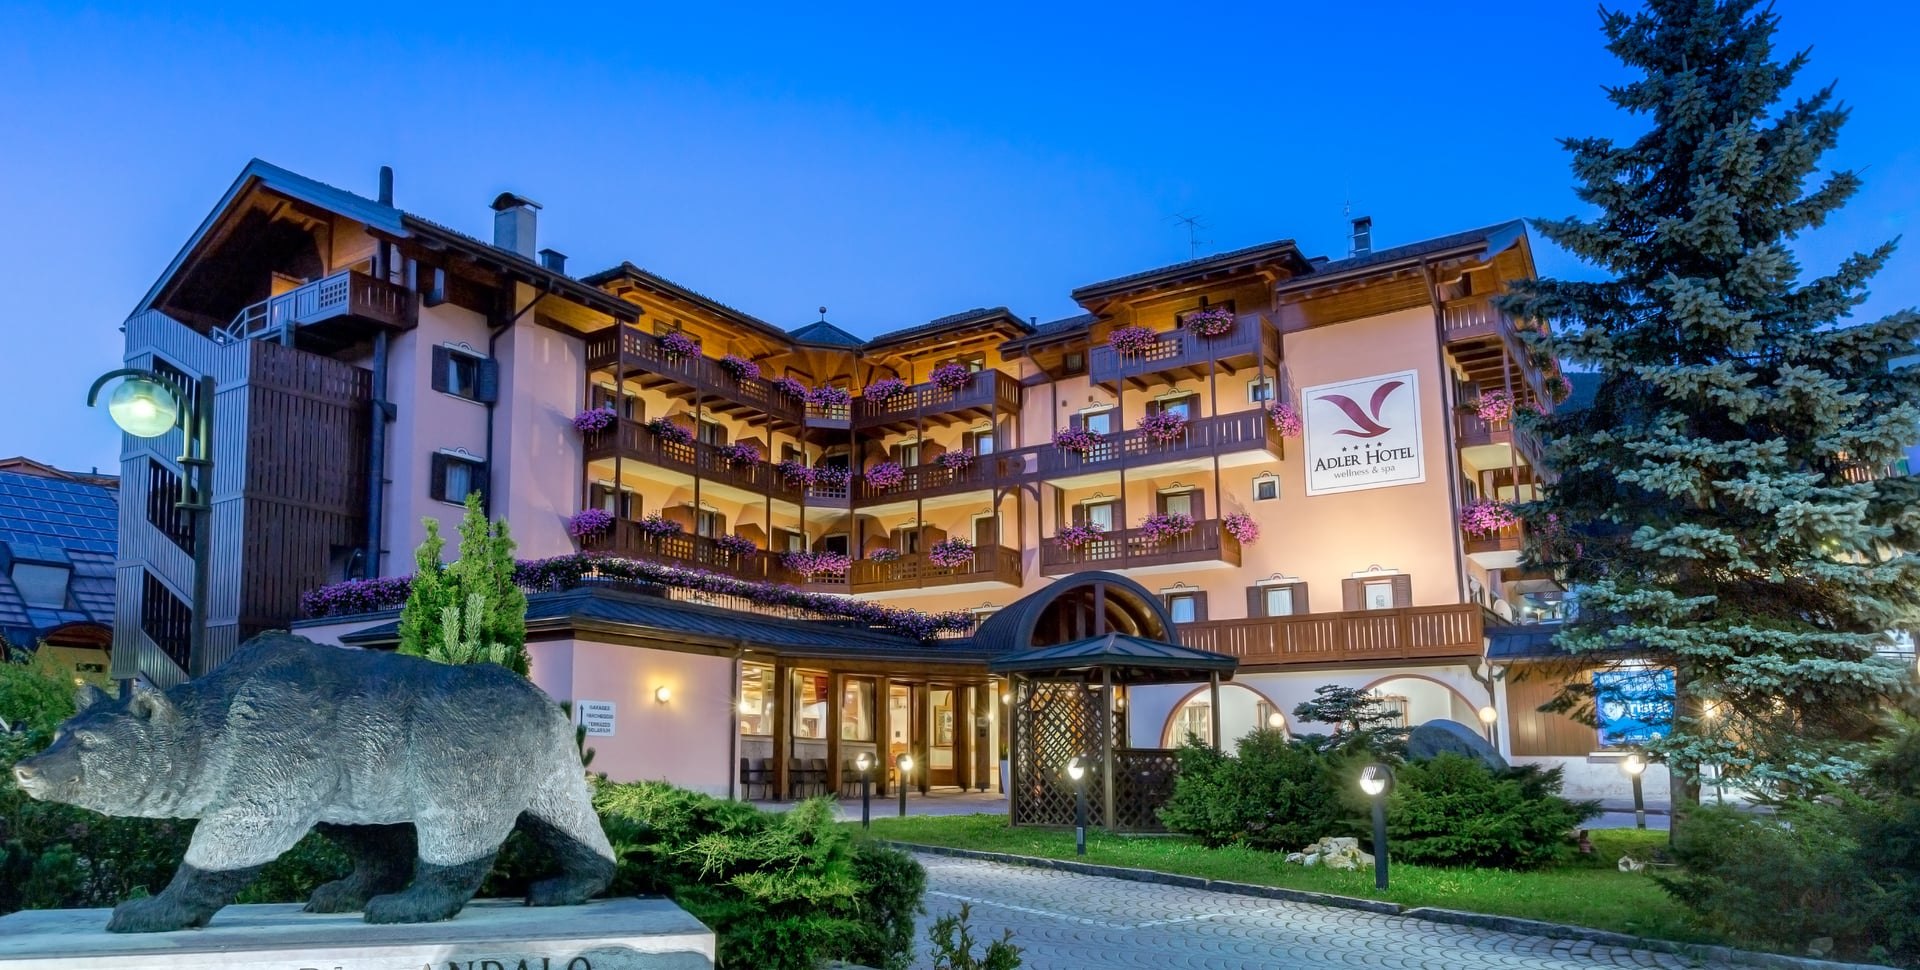 Hotel adler andalo hotel 4 stelle ad andalo for Hotel ad asiago con piscina